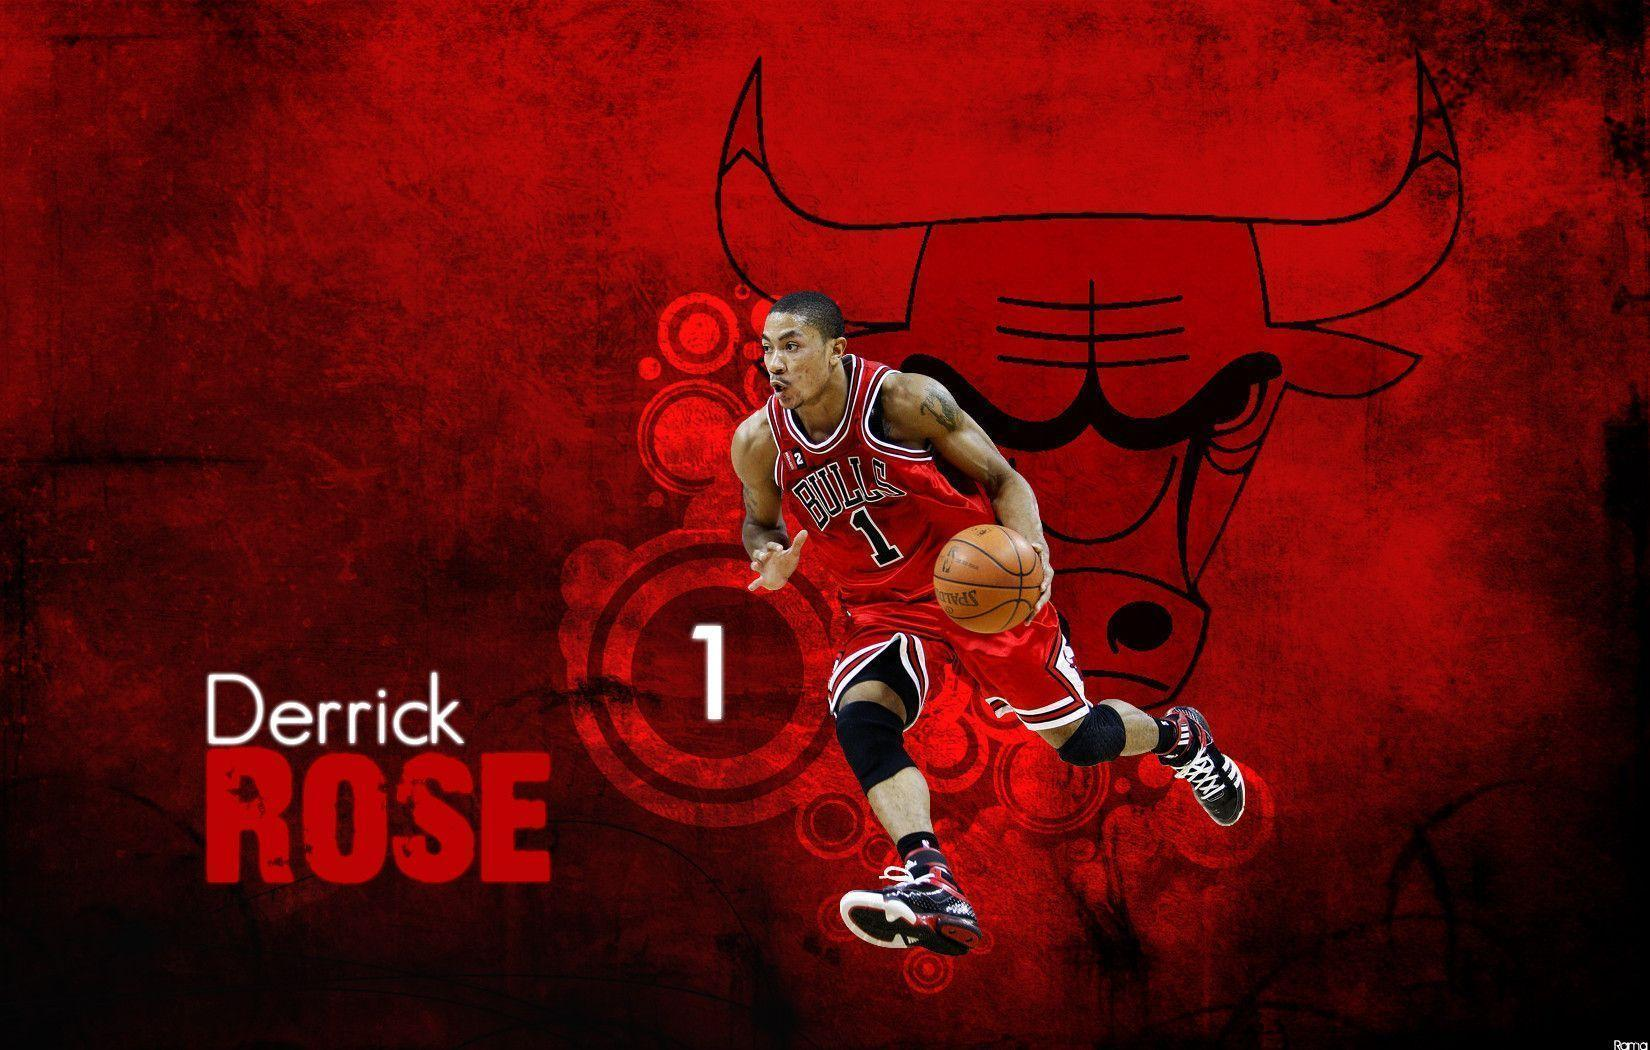 Derrick Rose Logo Wallpapers 1650x1050